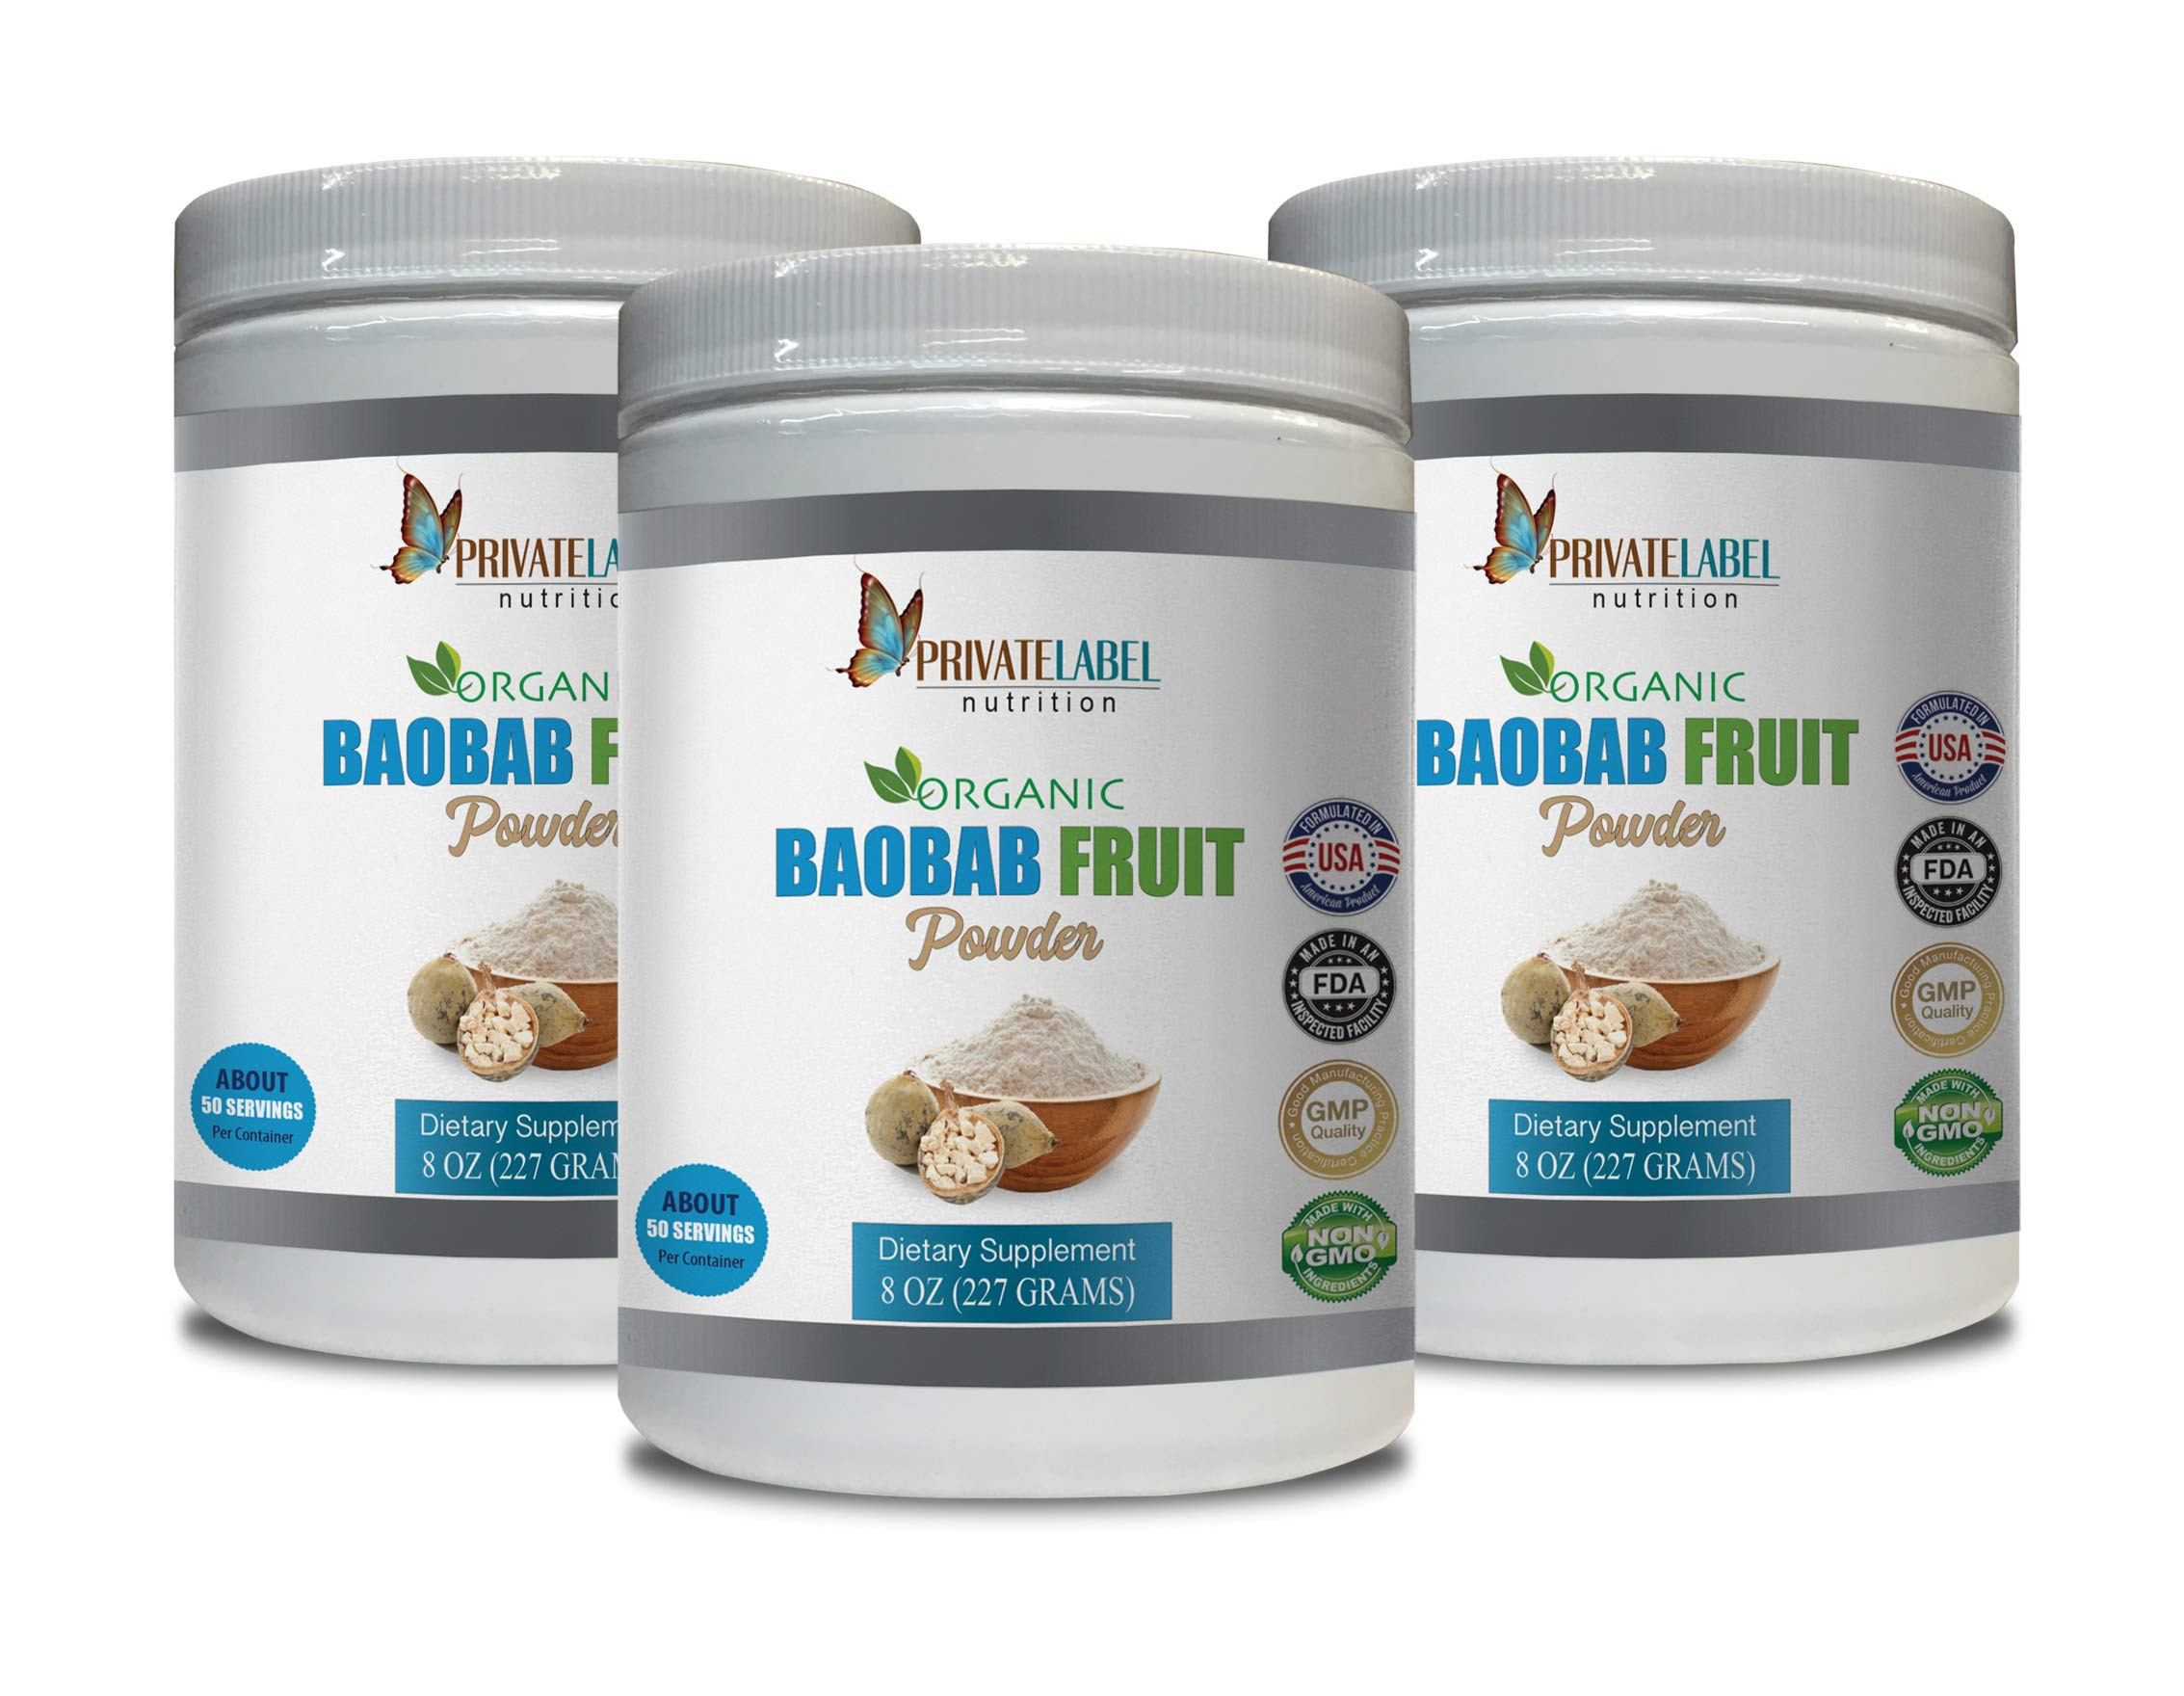 antioxidant and Immunity - Baobab Fruit Organic Powder - Digestive Detox Cleanse - 3 Cans 24 OZ (150 Servings)